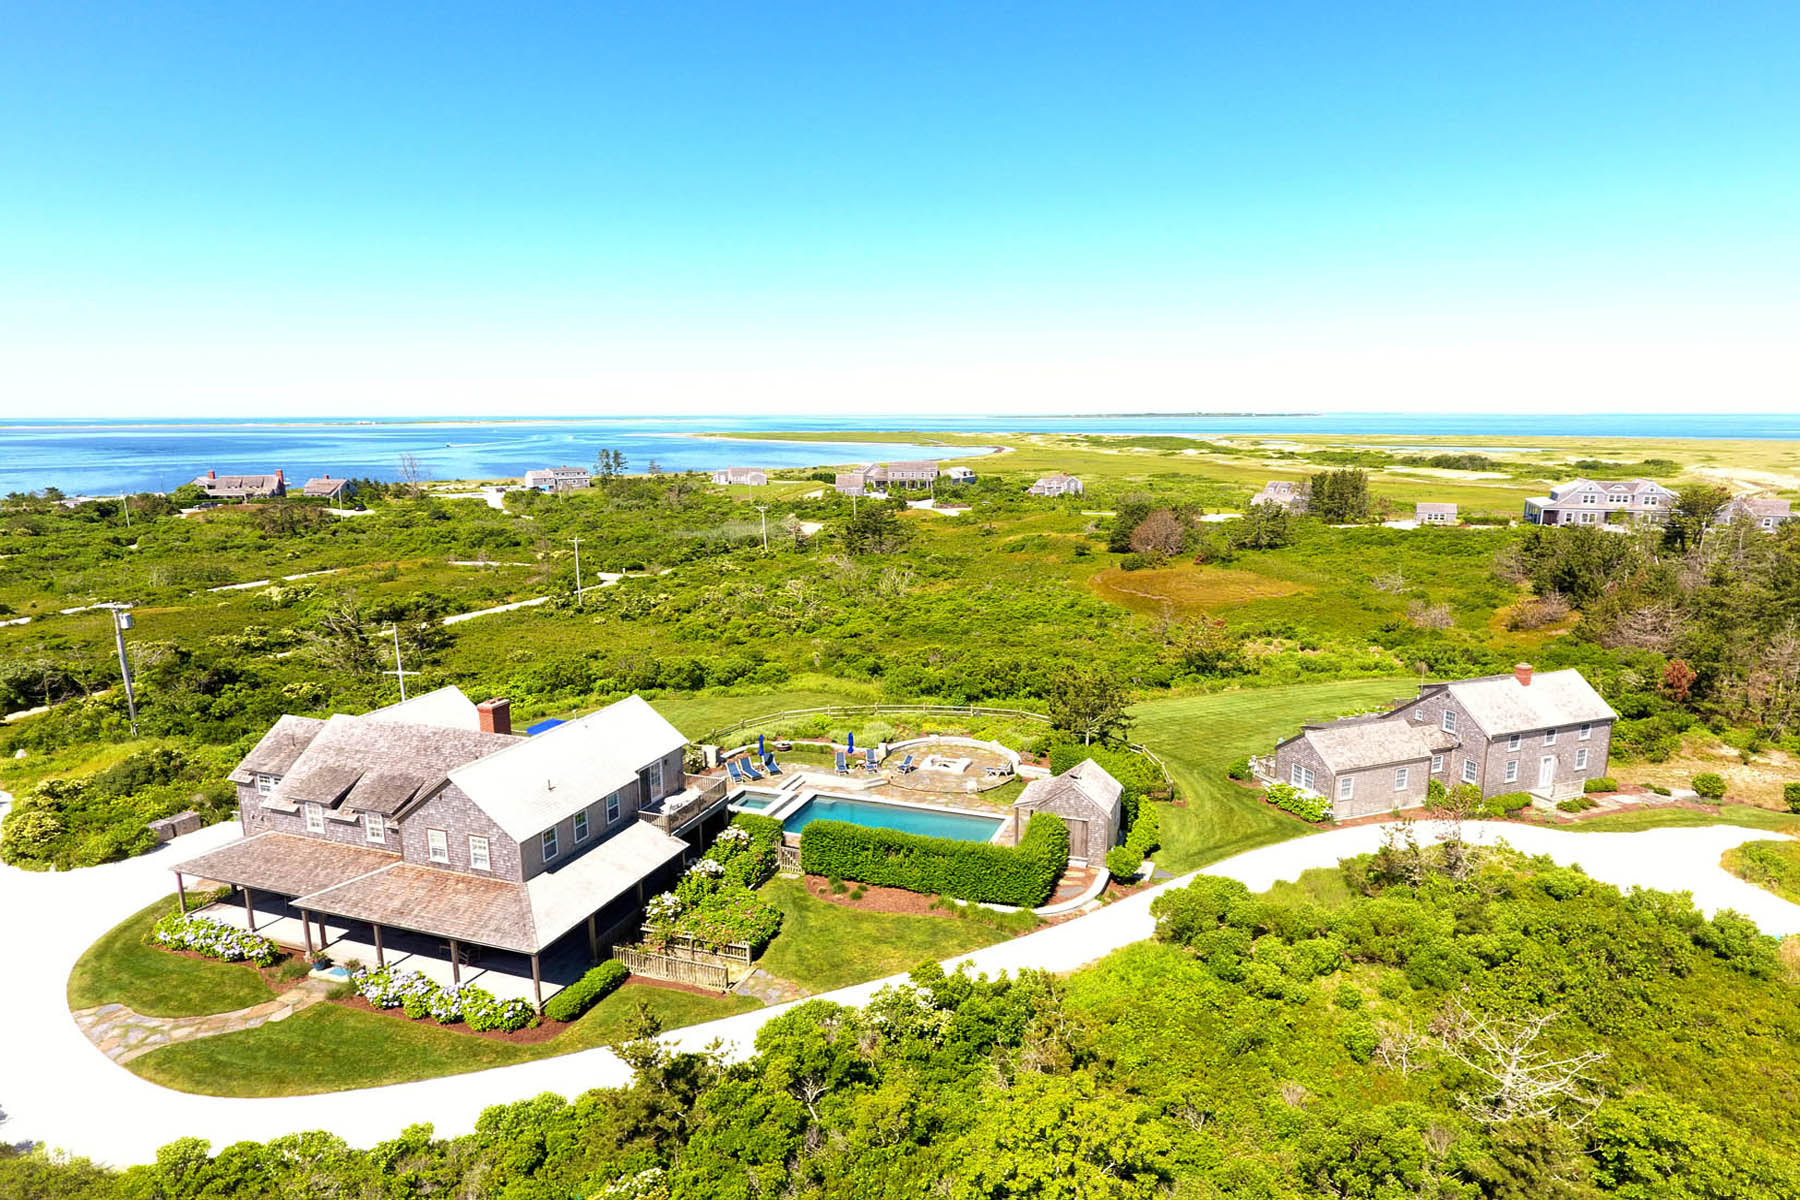 Single Family Home for Active at Sweeping Views on the North Shore 179 Eel Point Road Nantucket, Massachusetts 02554 United States